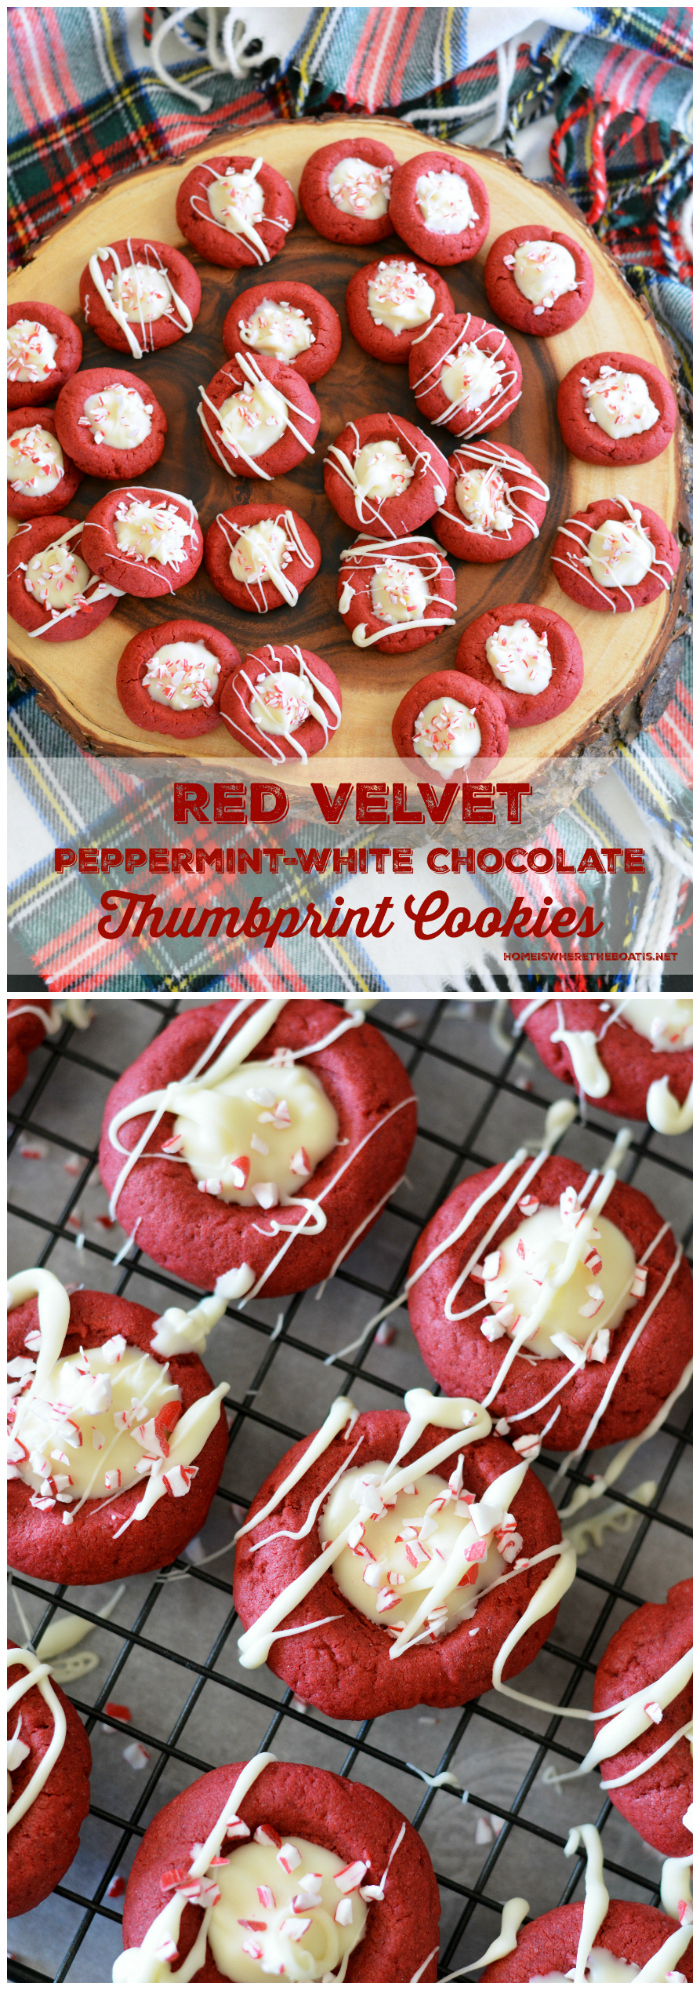 Red Velvet Peppermint-White Chocolate Thumbprints | ©homeiswheretheboatis.net #cookies #recipes